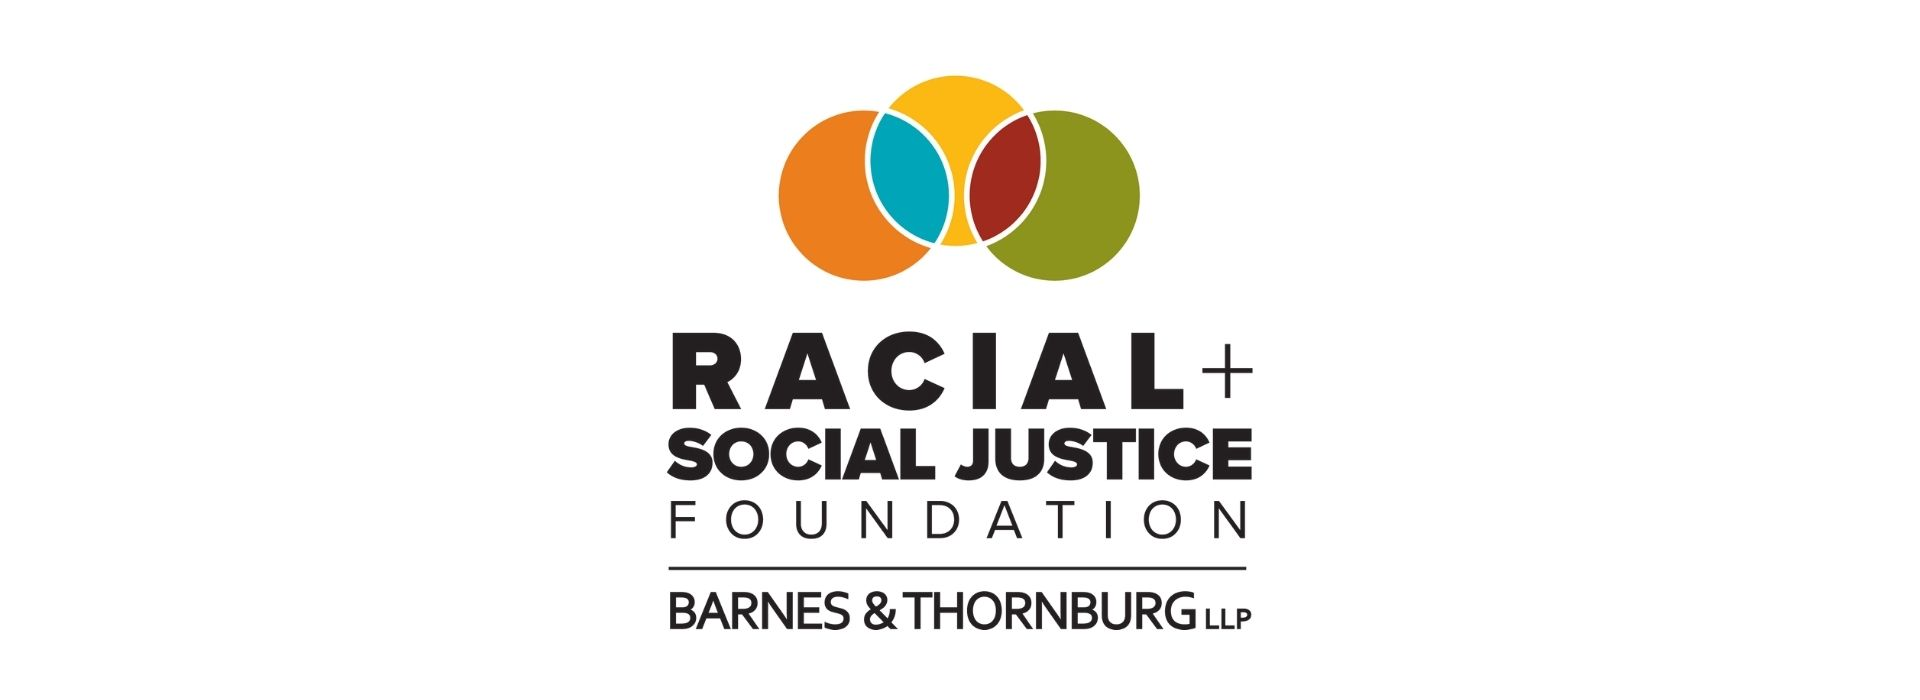 Barnes & Thornburg Racial and Social Justice Foundation